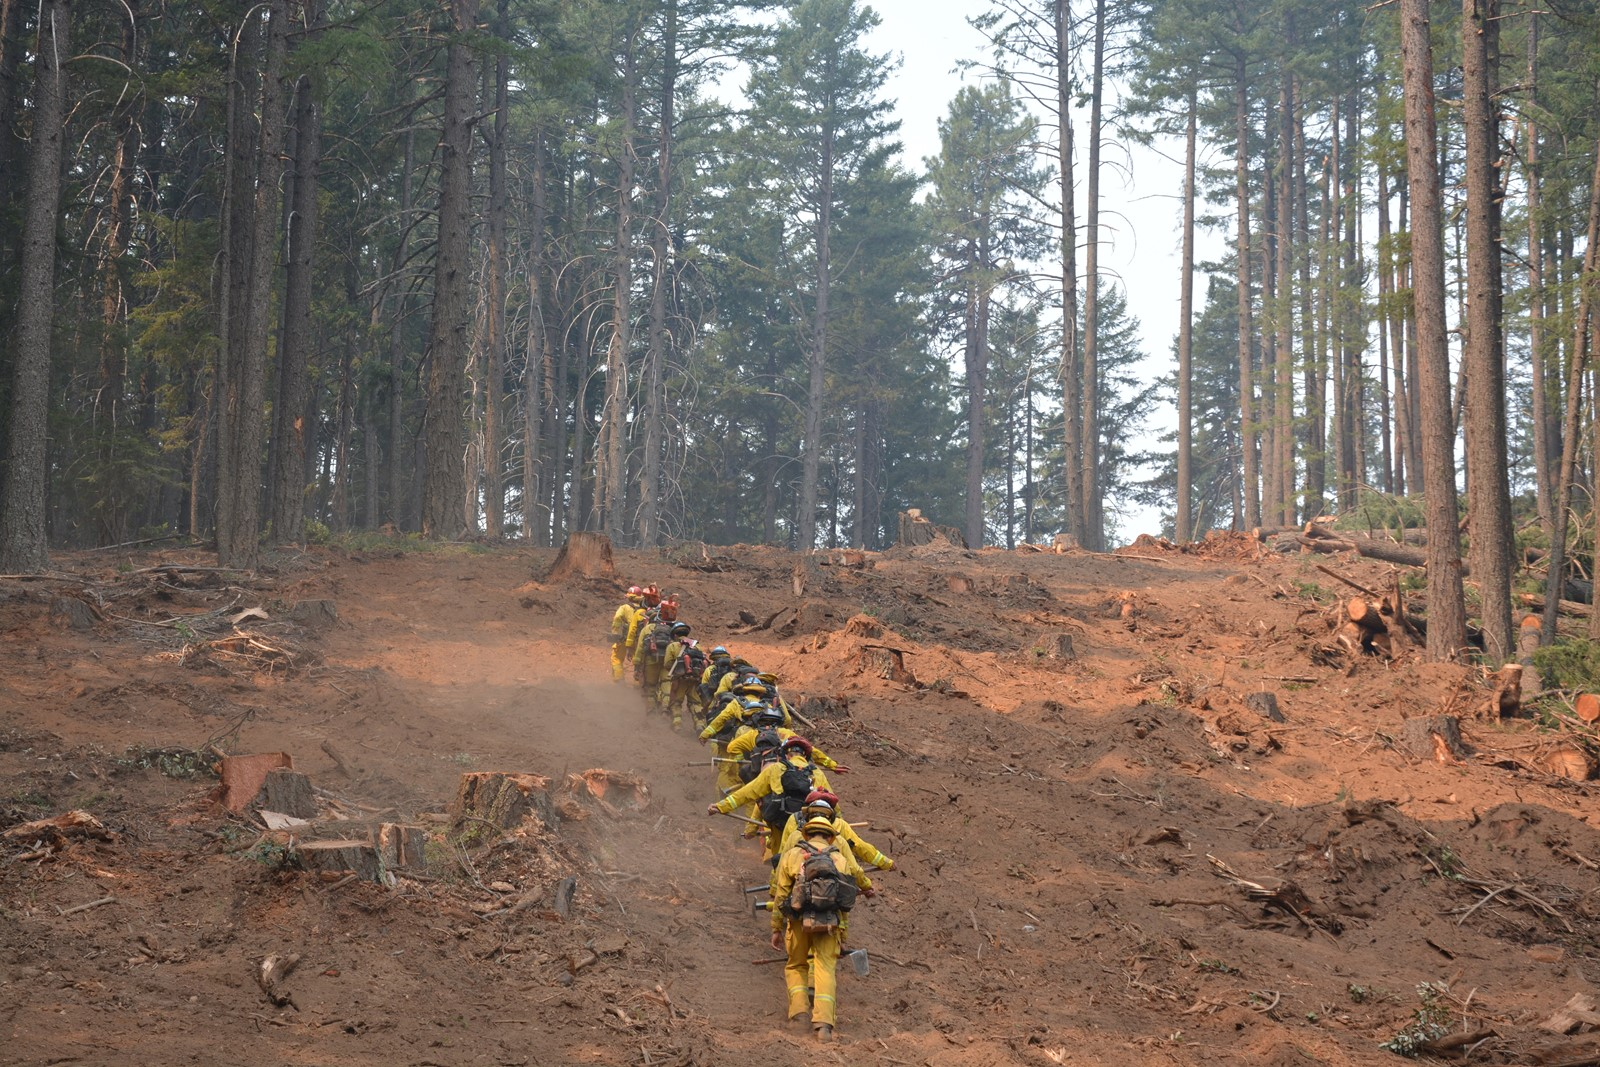 California Conservation Corps members battle the Carr fire near Redding. Crews have been beating back flames in areas where temperatures soar above 100 degrees and the smoke is so thick that breathing is difficult. — Photograph: Brice Bennett/California Department of Forestry and Fire Protection.